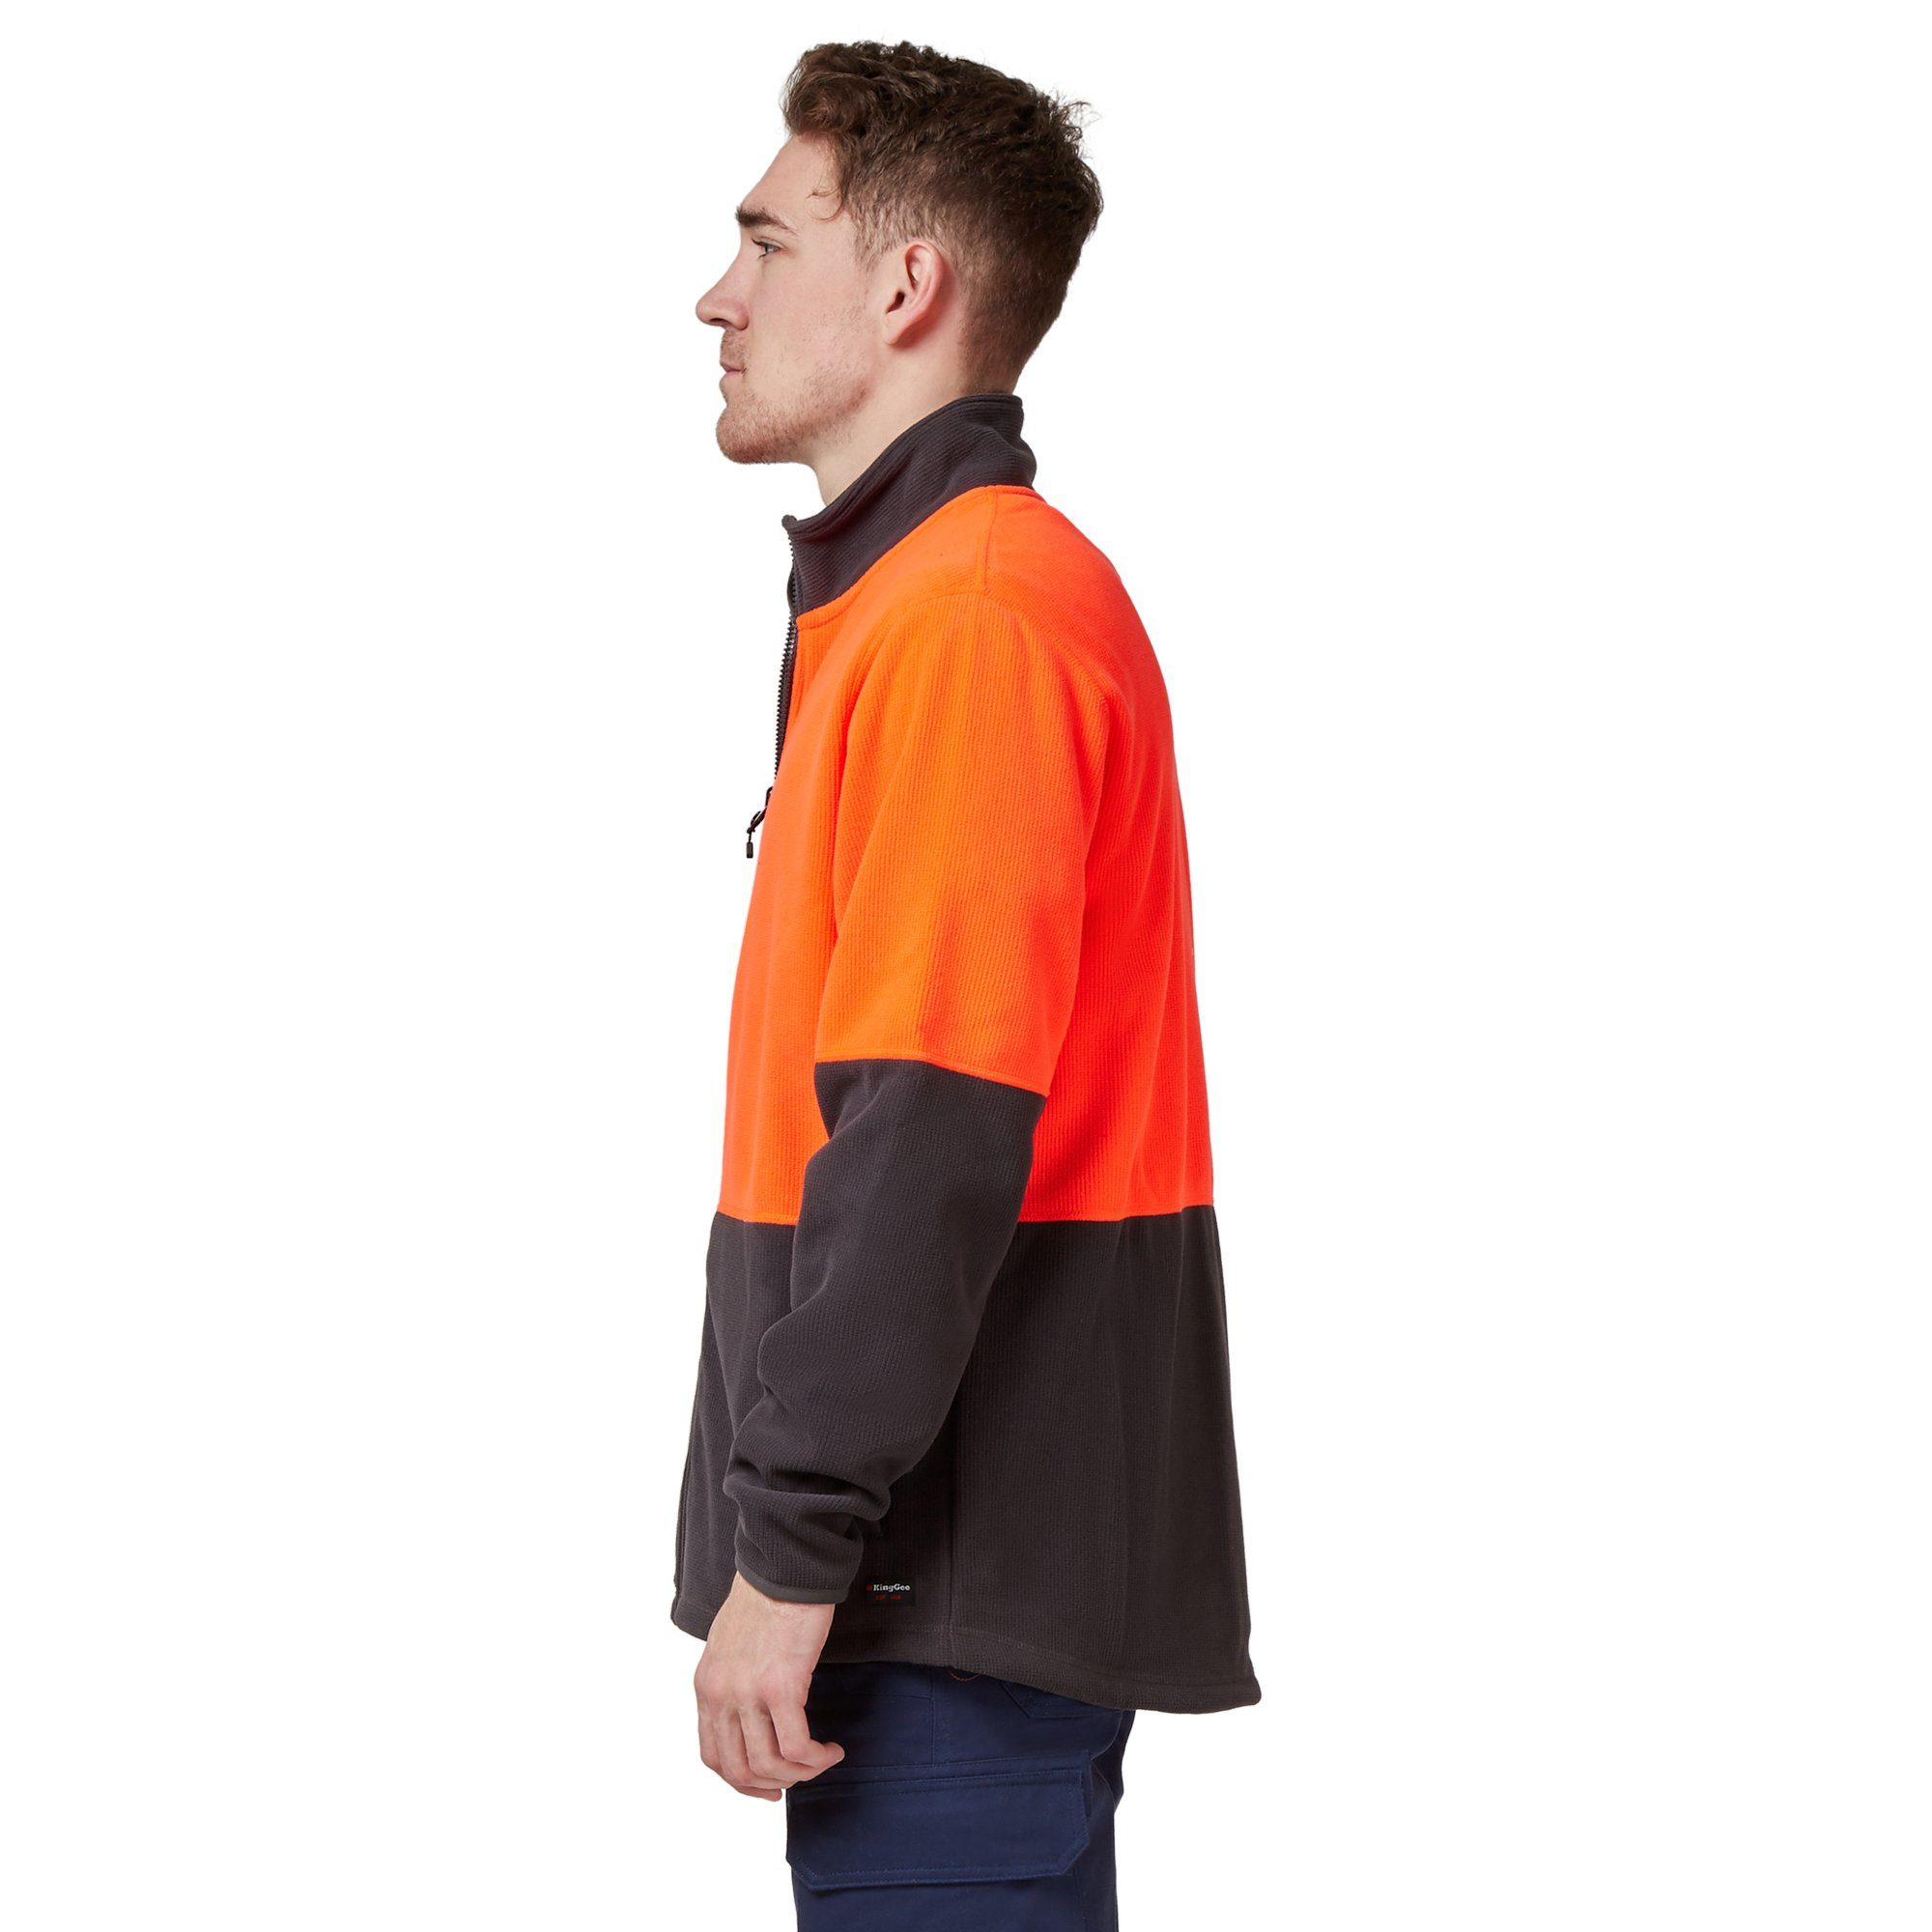 King Gee Full Zip Spliced Hi Vis Fleece - Red/Charcoal Workwear Isbister & Co Wholesale